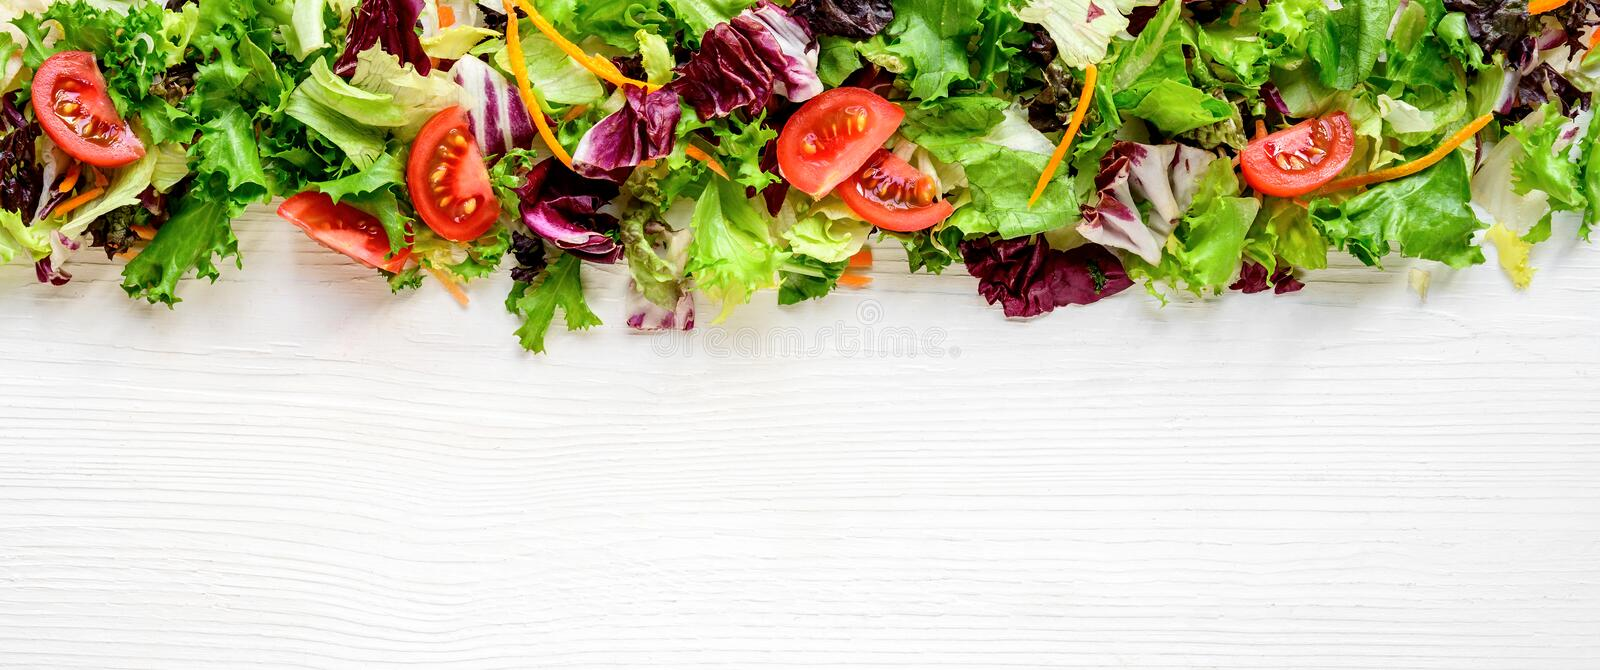 Mixed fresh salad leaves and vegetables on white wooden table. Background, border, frame, website header royalty free stock photo